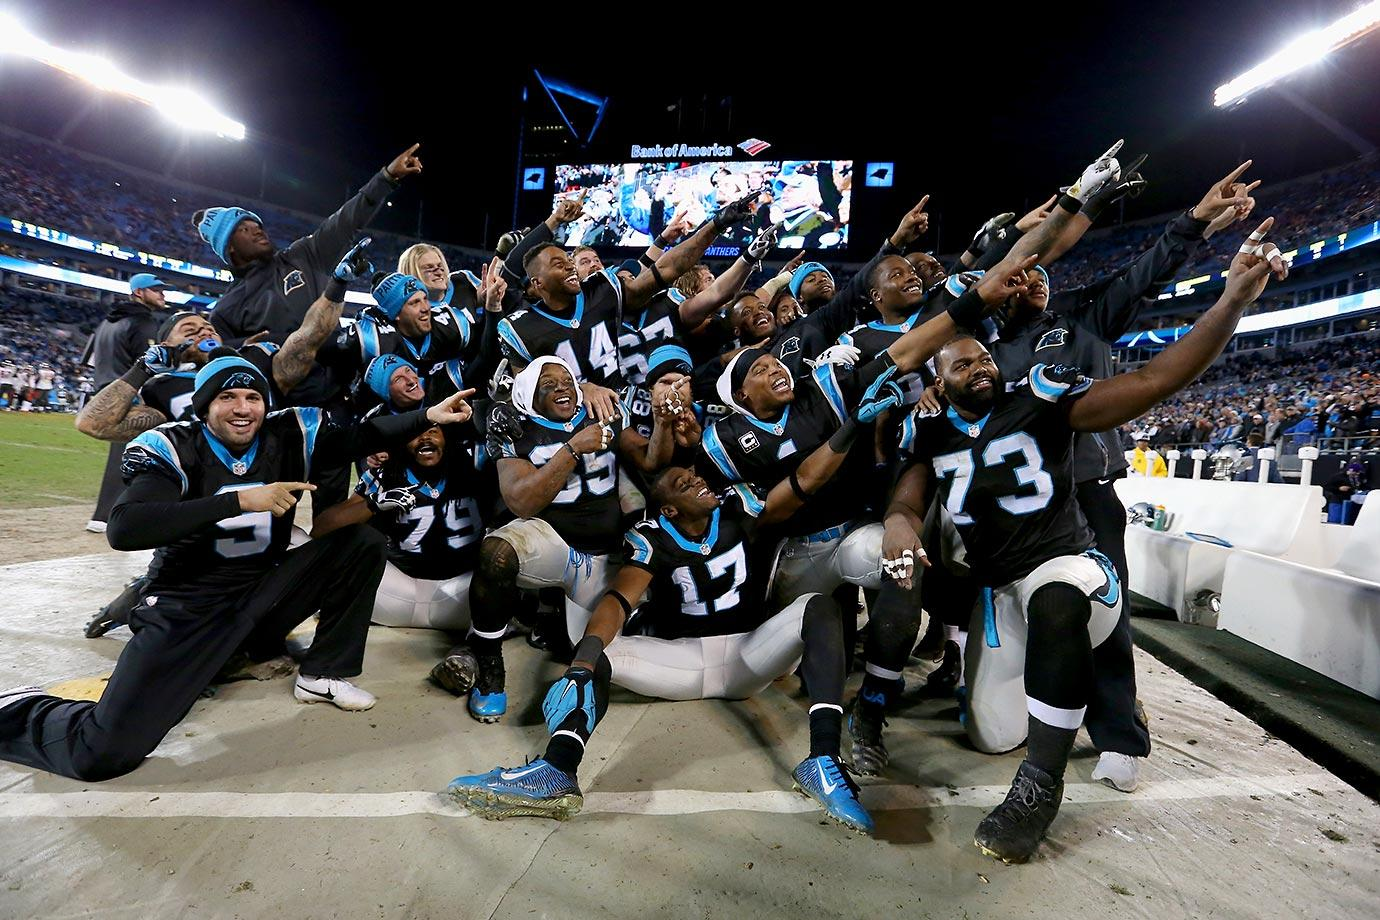 Cam Newton smiles with teammates during a photo he organized in the bench area during a game against Tampa Bay.  The Panthers won to clinch home field advantage throughout the playoffs.                                                              Text credit: Daniel Hersh